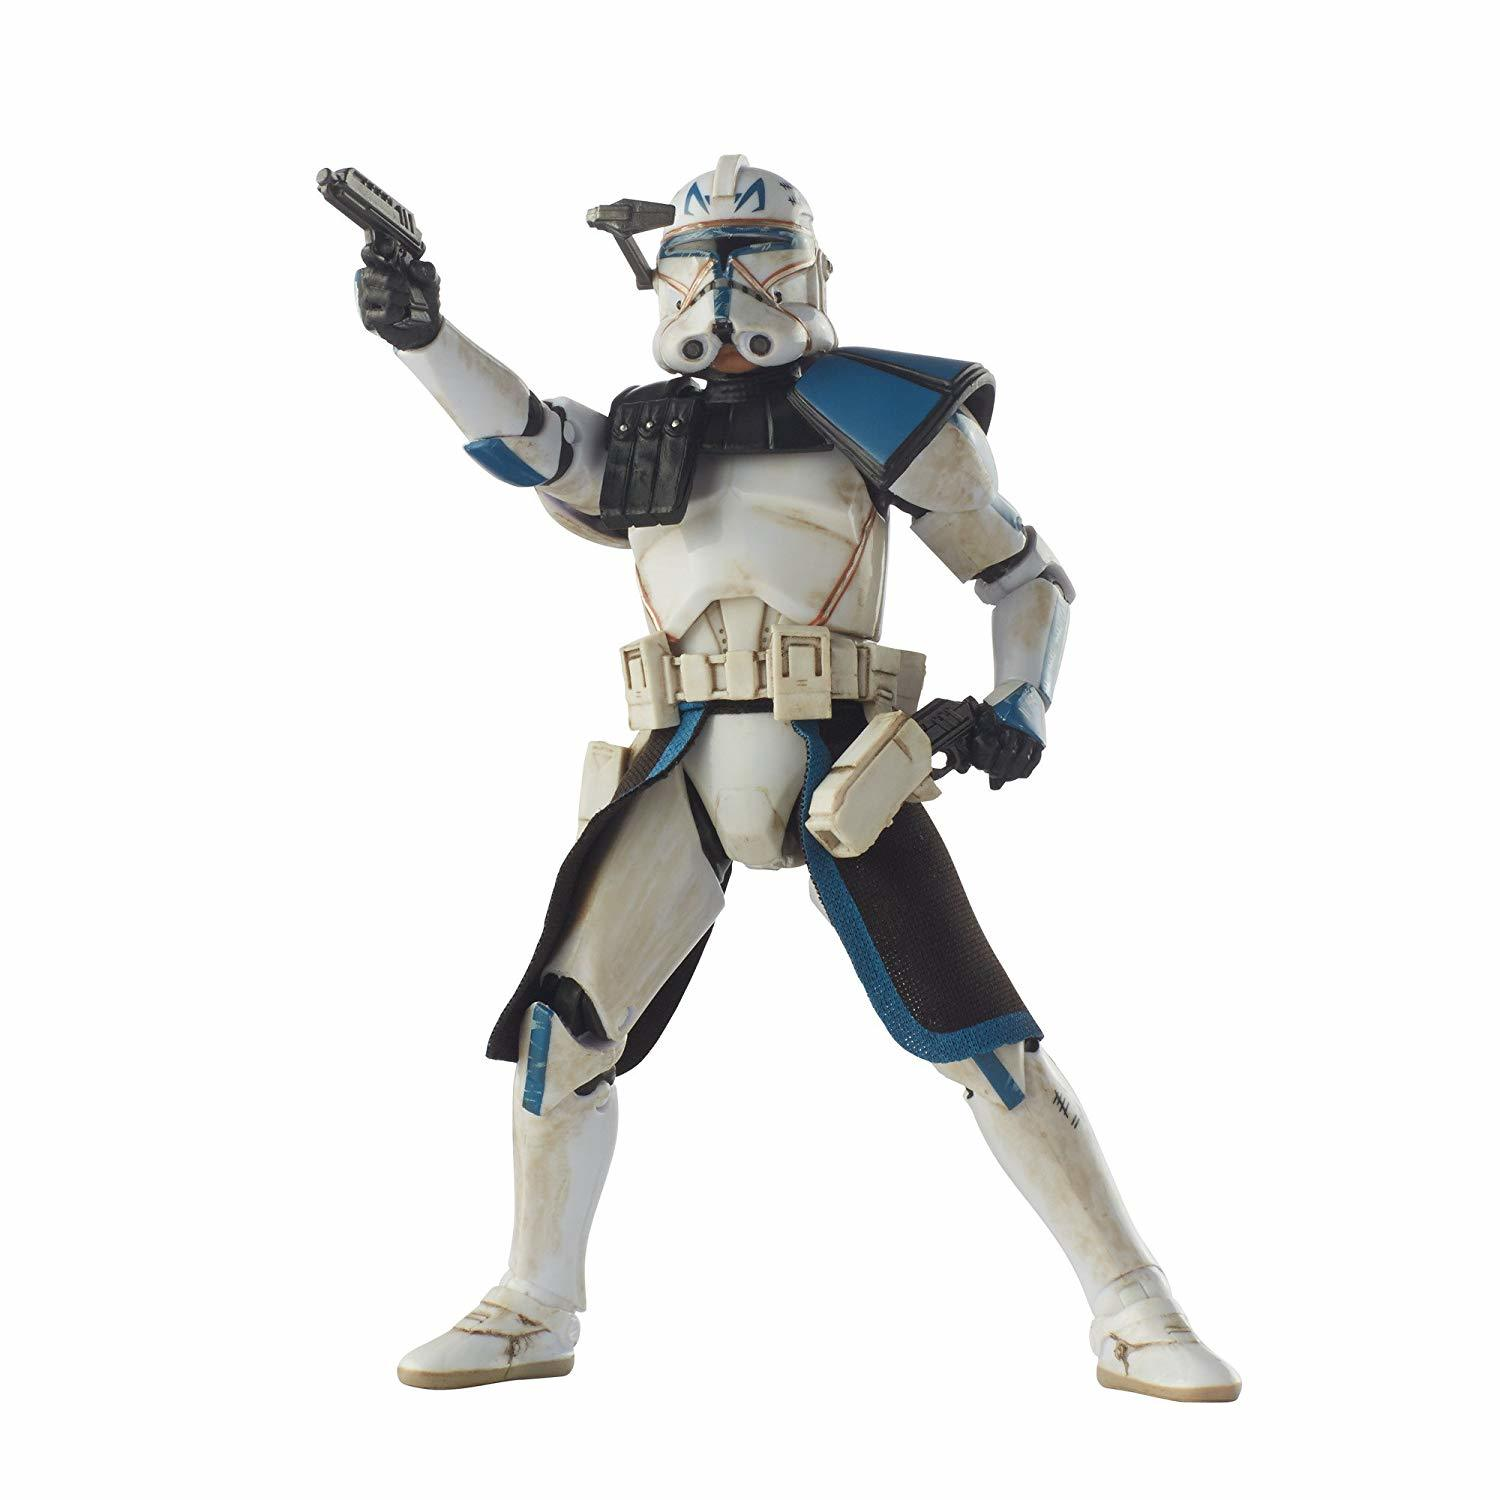 Star Wars The Black Series Clone Captain Rex, 6-Inch Action Figure, Hasbro, 4+